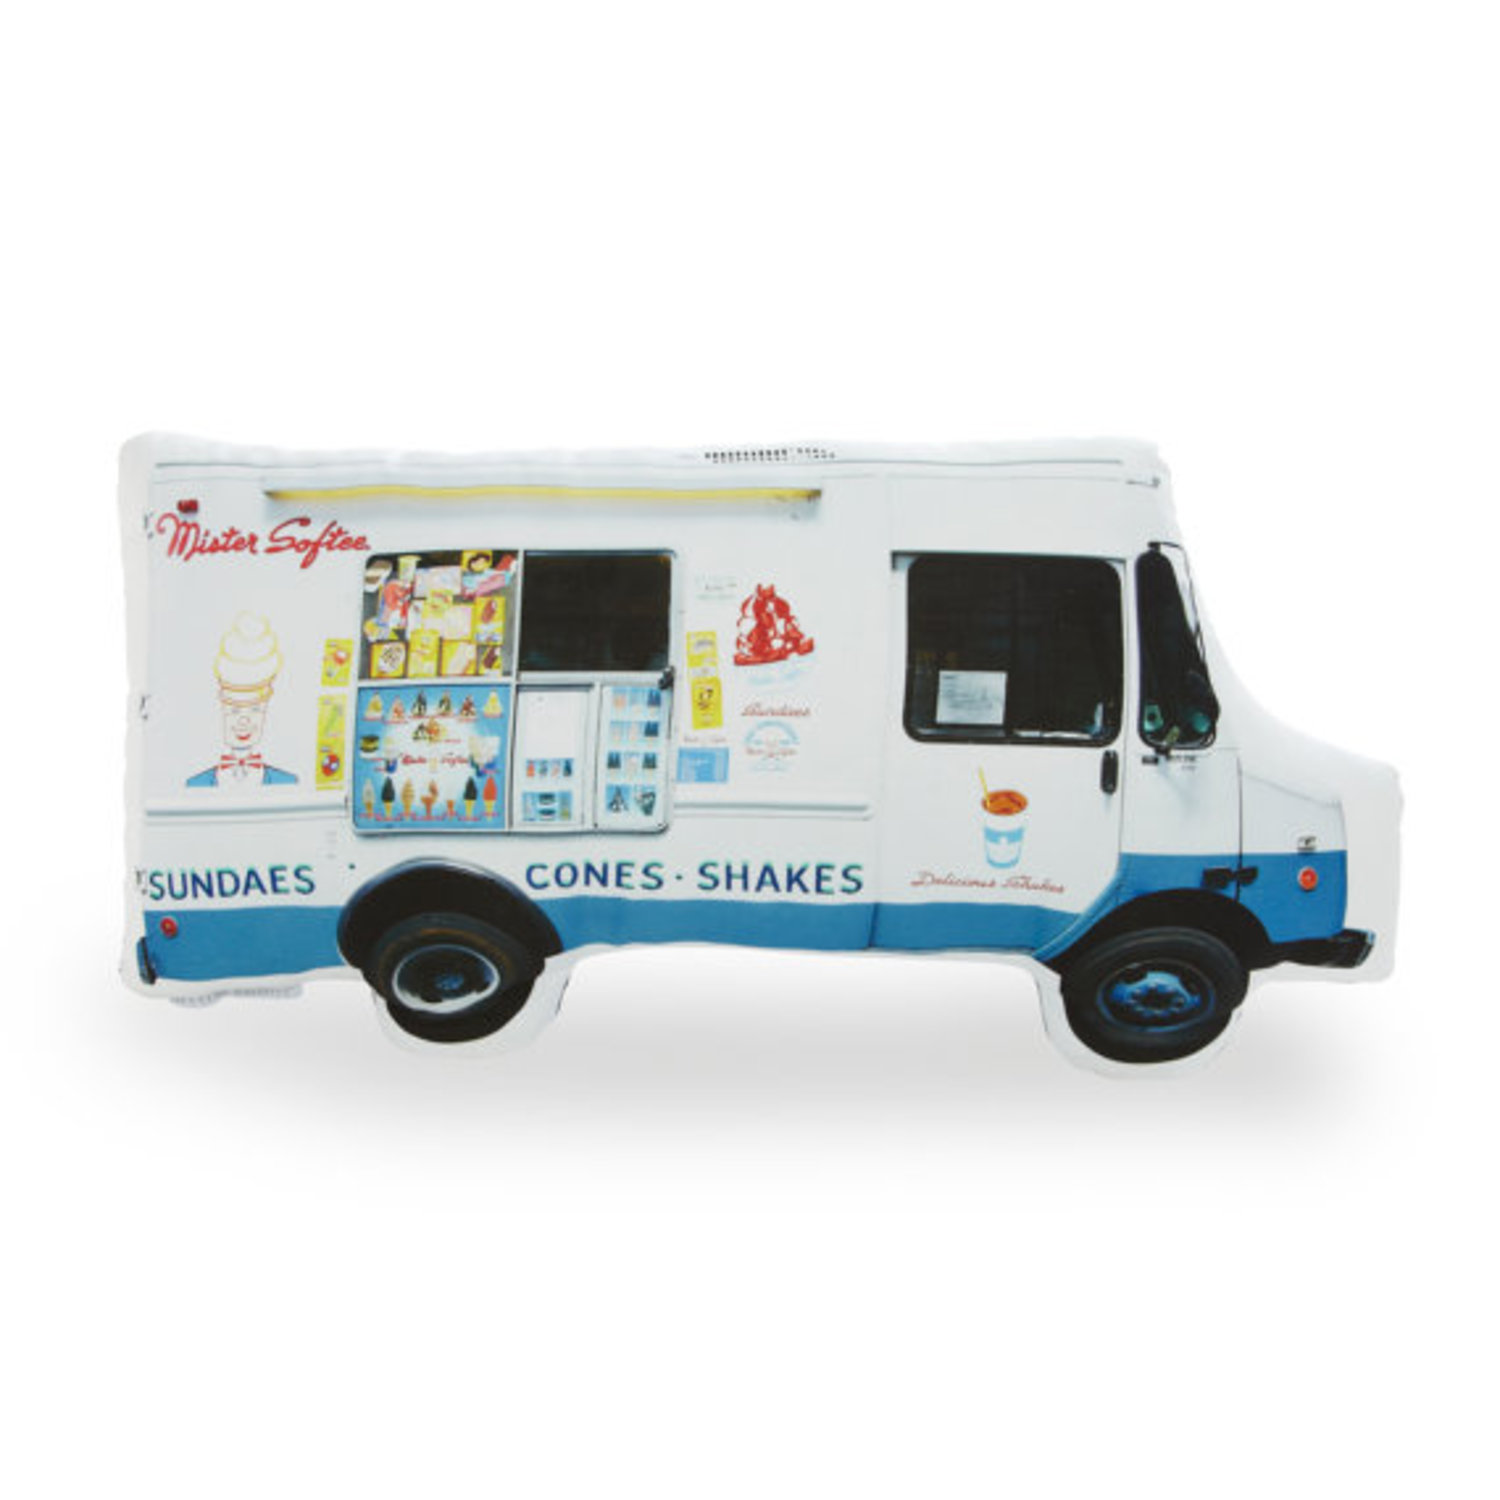 Mister Softee Ice Cream Truck Printed Pillow